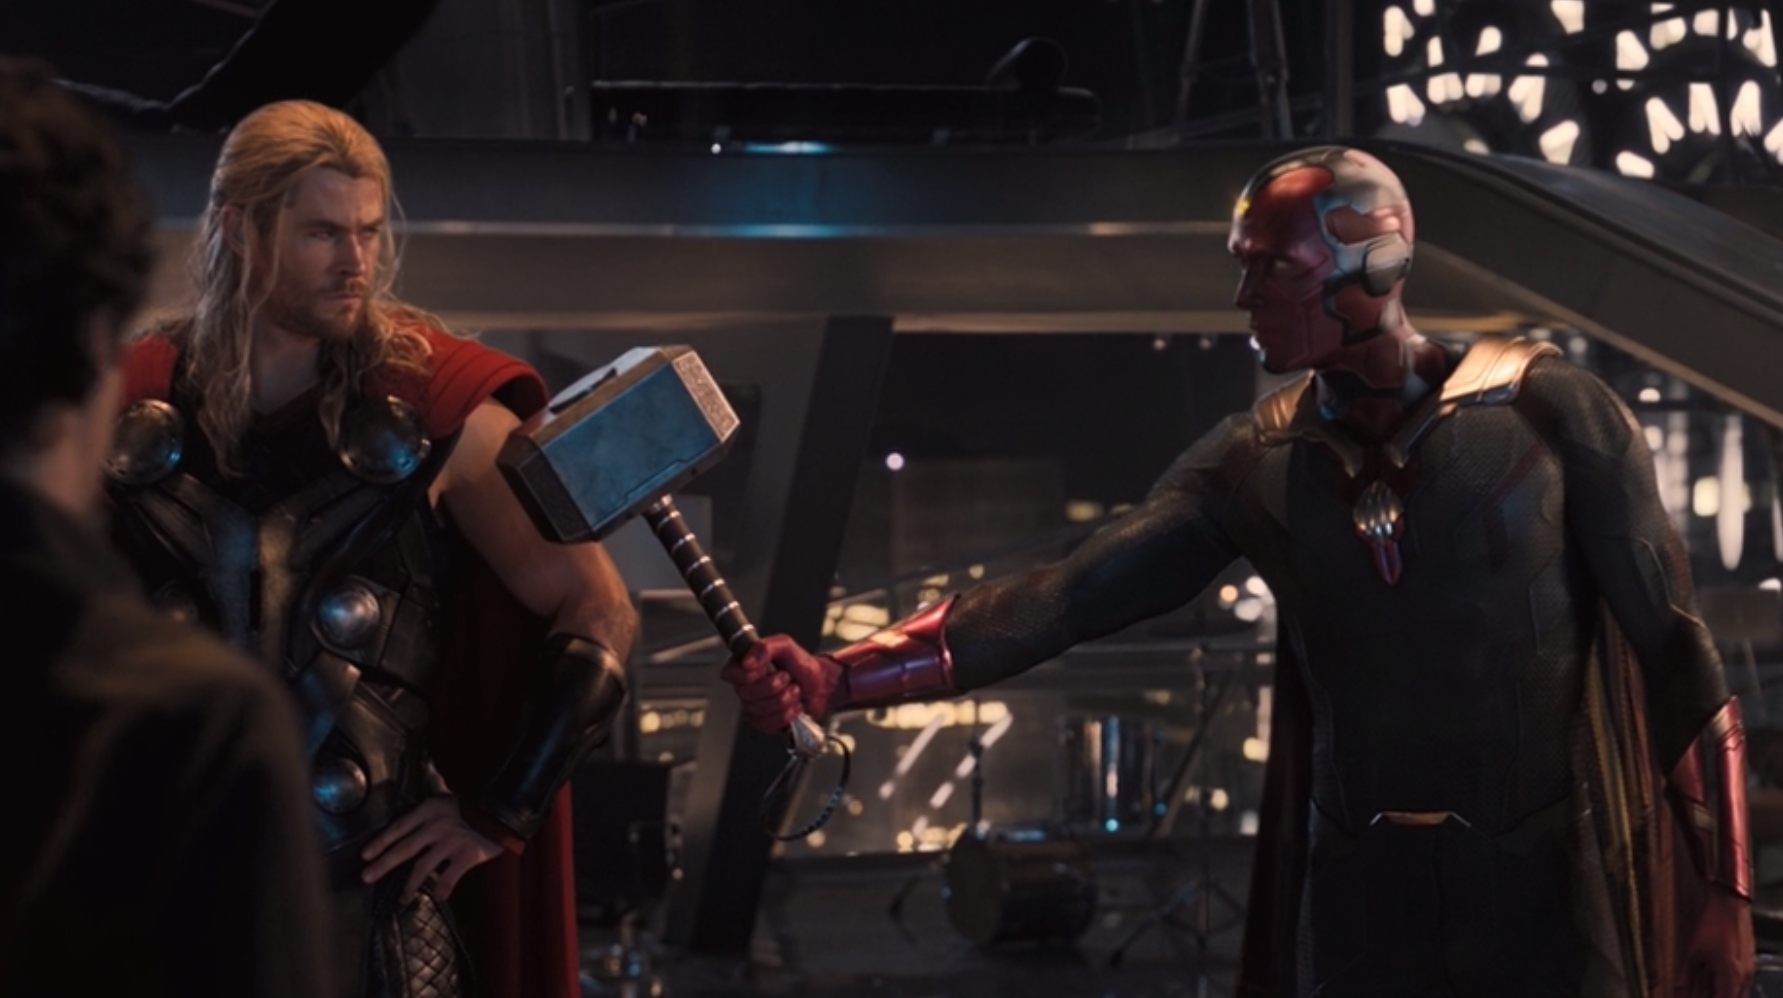 """Chris Hemsworth as Thor and Paul Bettany as J.A.R.V.I.S. and Vision in the movie """"Avengers: Age of Ultron."""""""